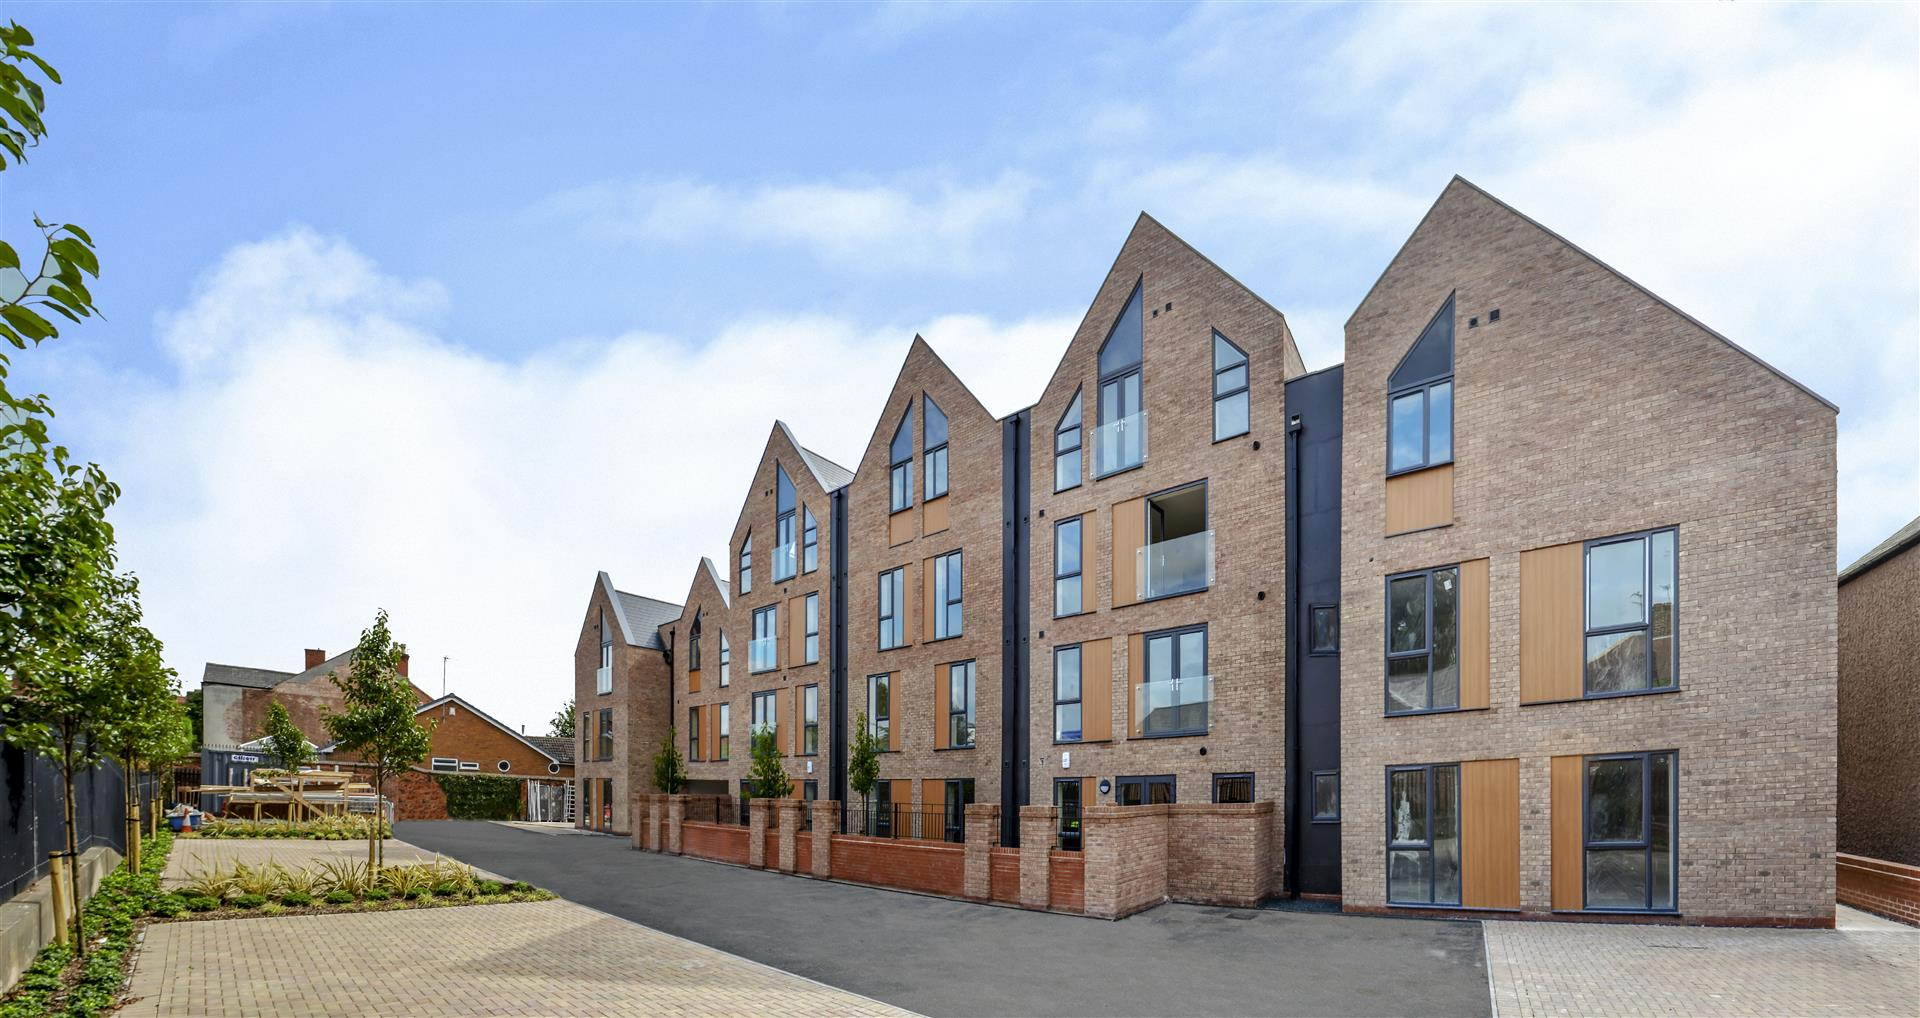 2 Bedrooms Apartment Flat for sale in Newlands House, Nether Street, Beeston